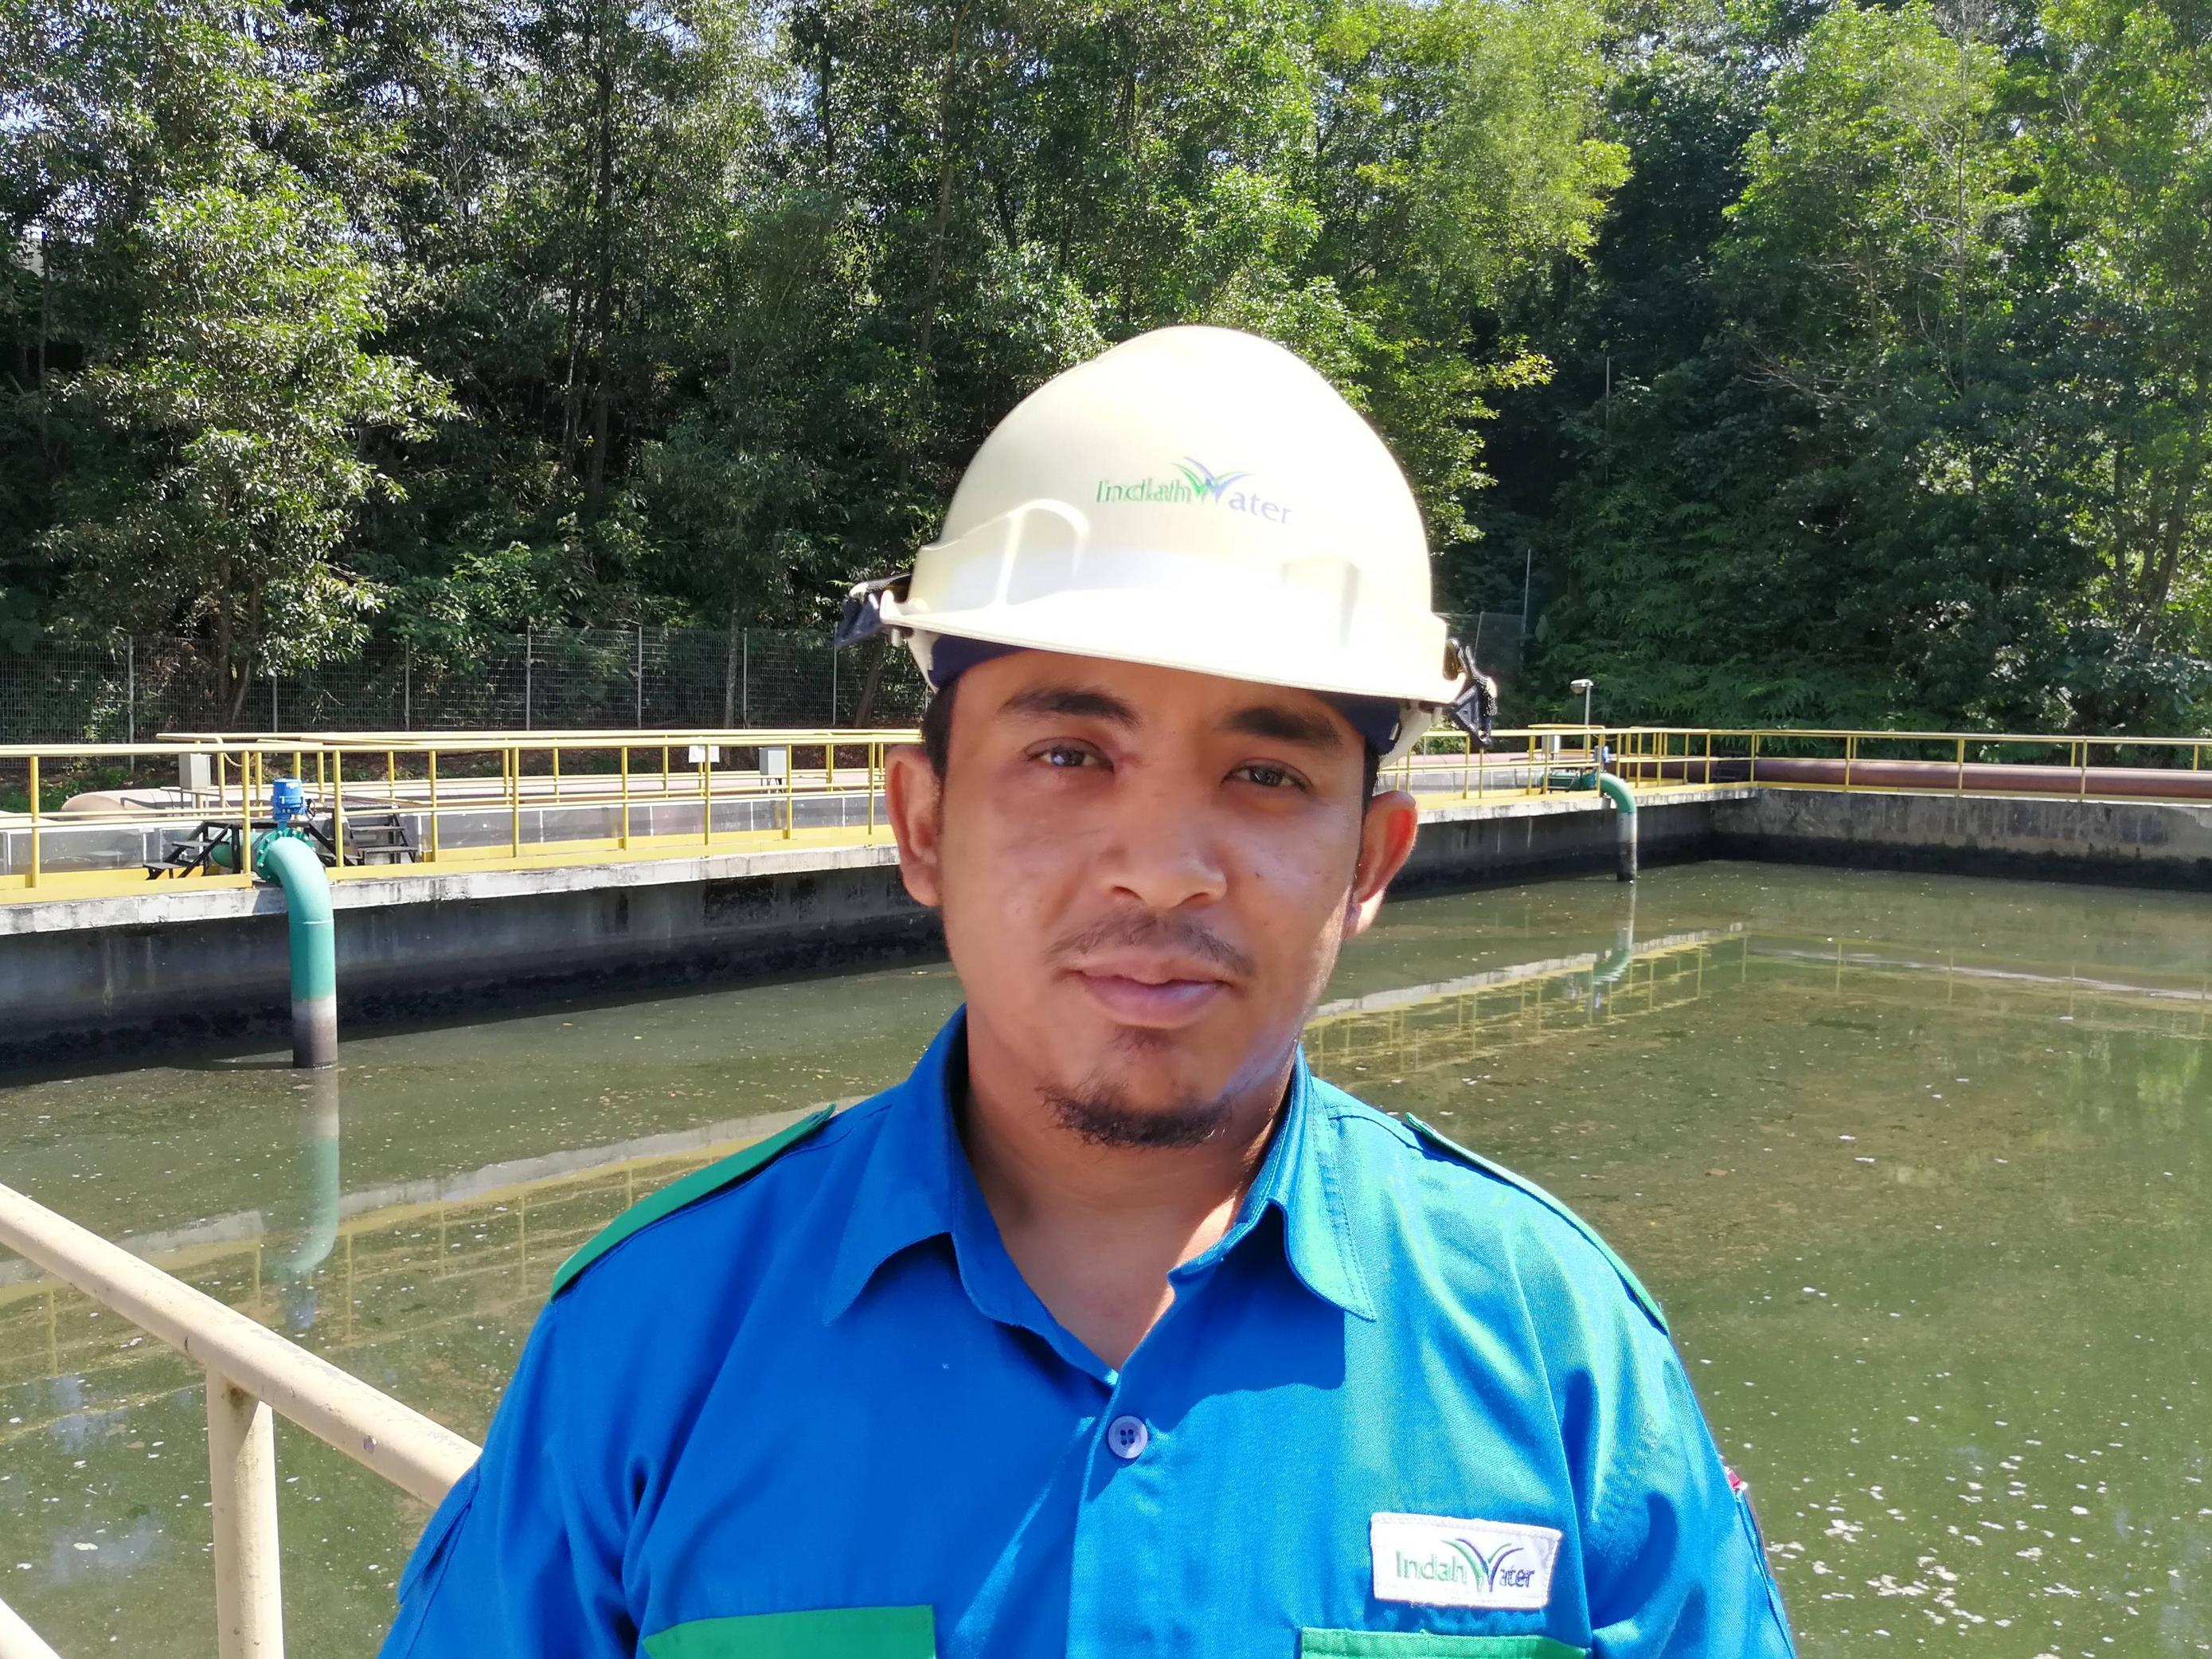 Hamidi has been working as a treatment plant technician for seven years.